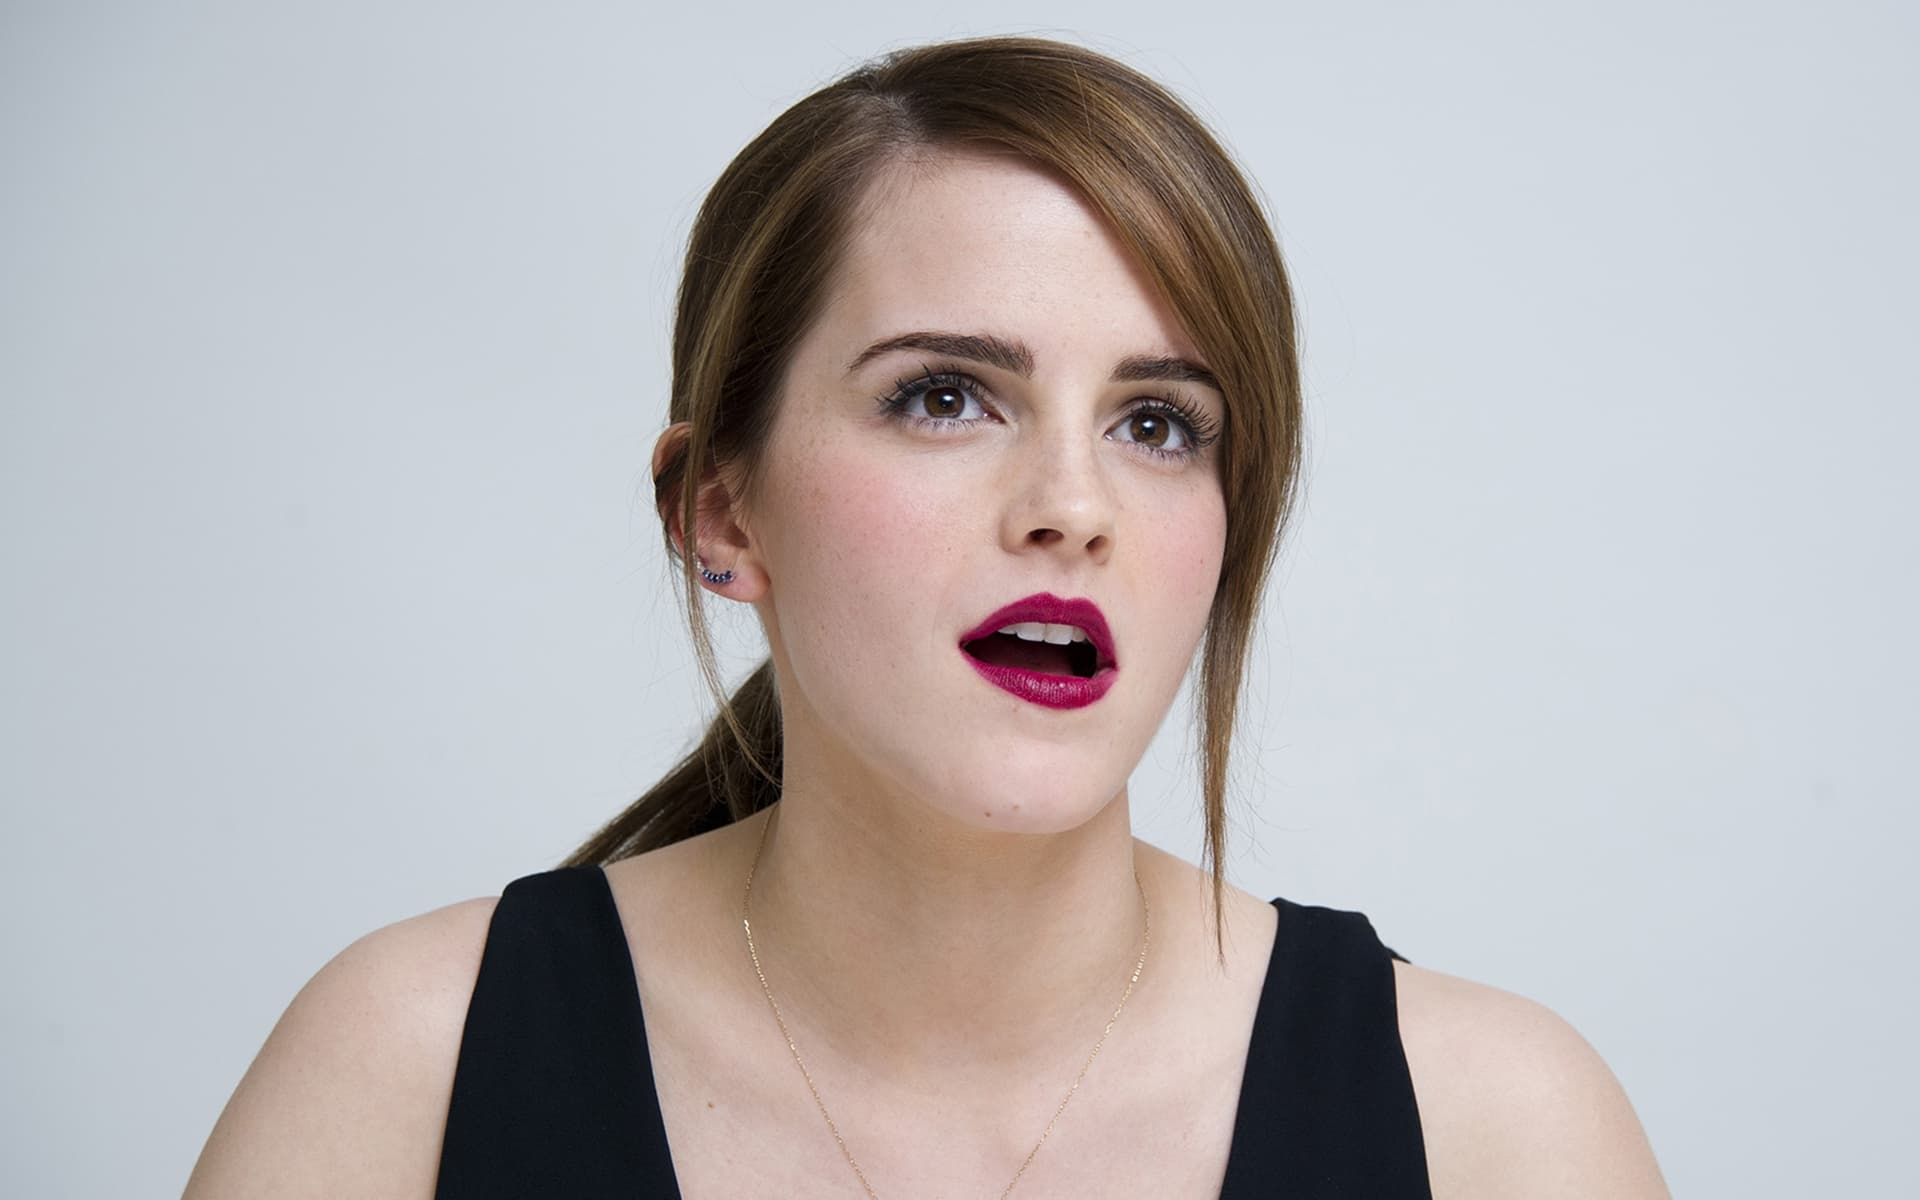 Cute Wallpapers For Summer 40 Emma Watson Wallpapers High Quality Resolution Download